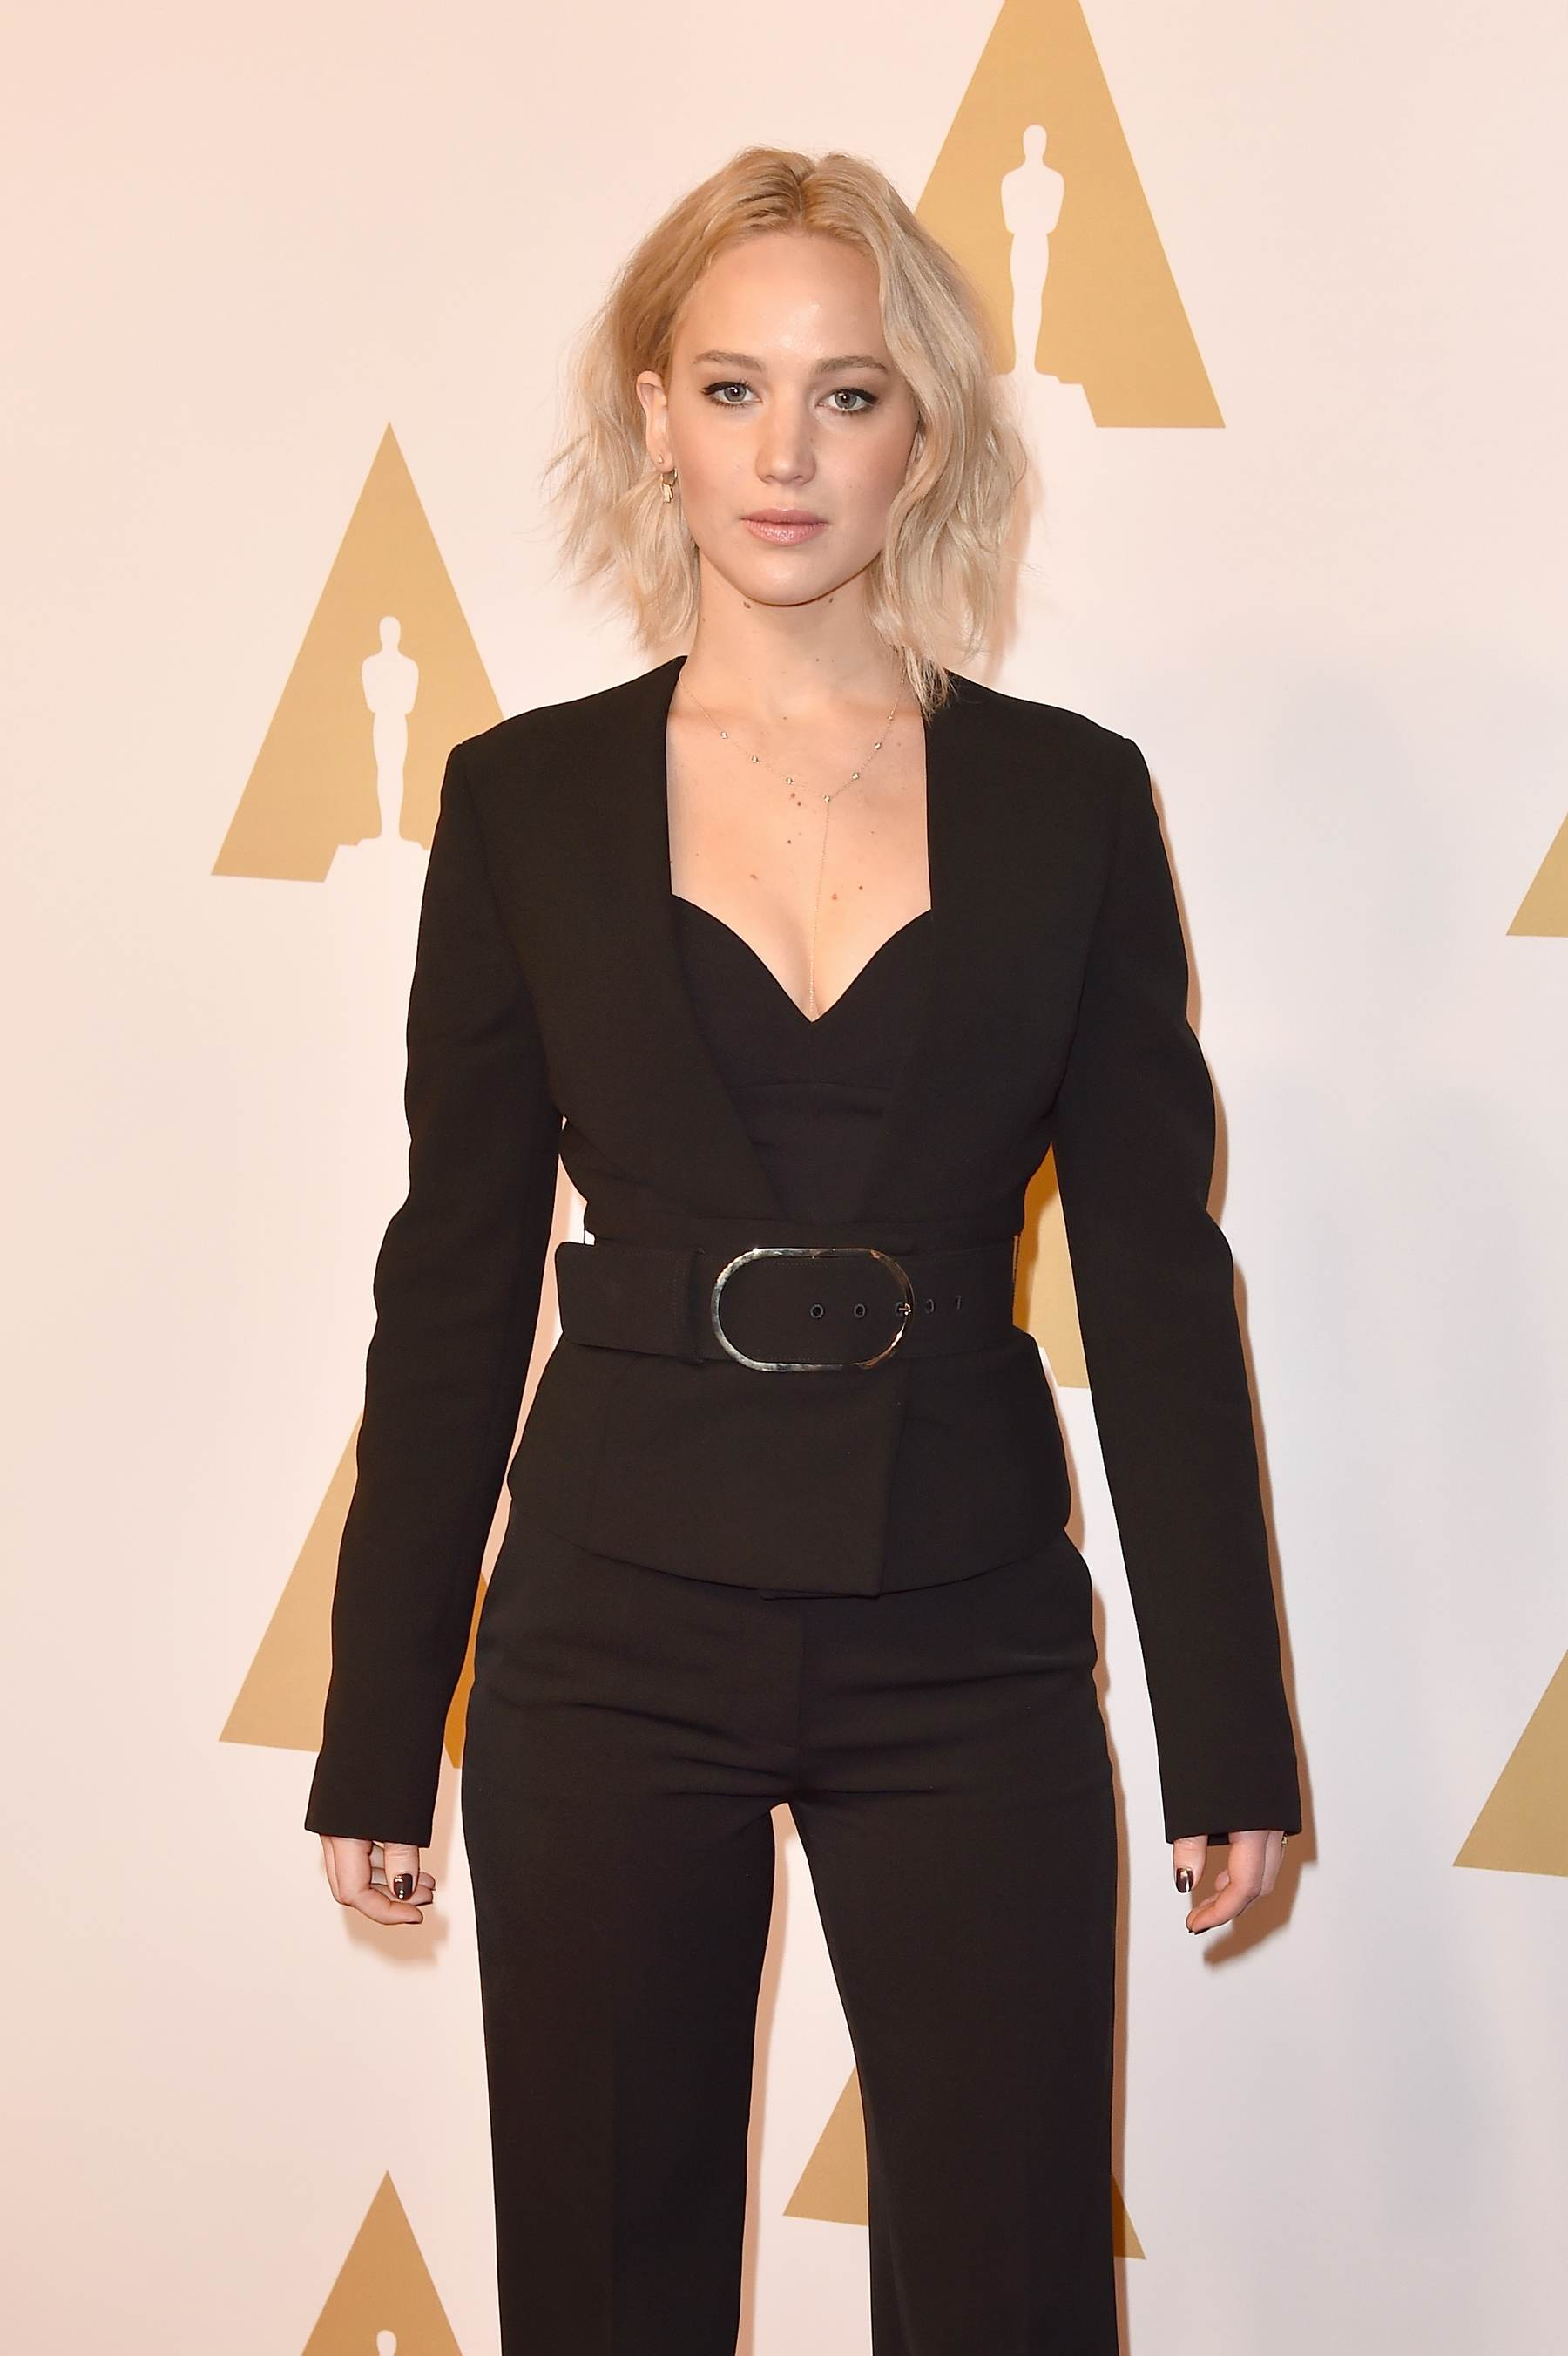 Jennifer Lawrence arrives at Annual Academy Awards Nominee Luncheon-1